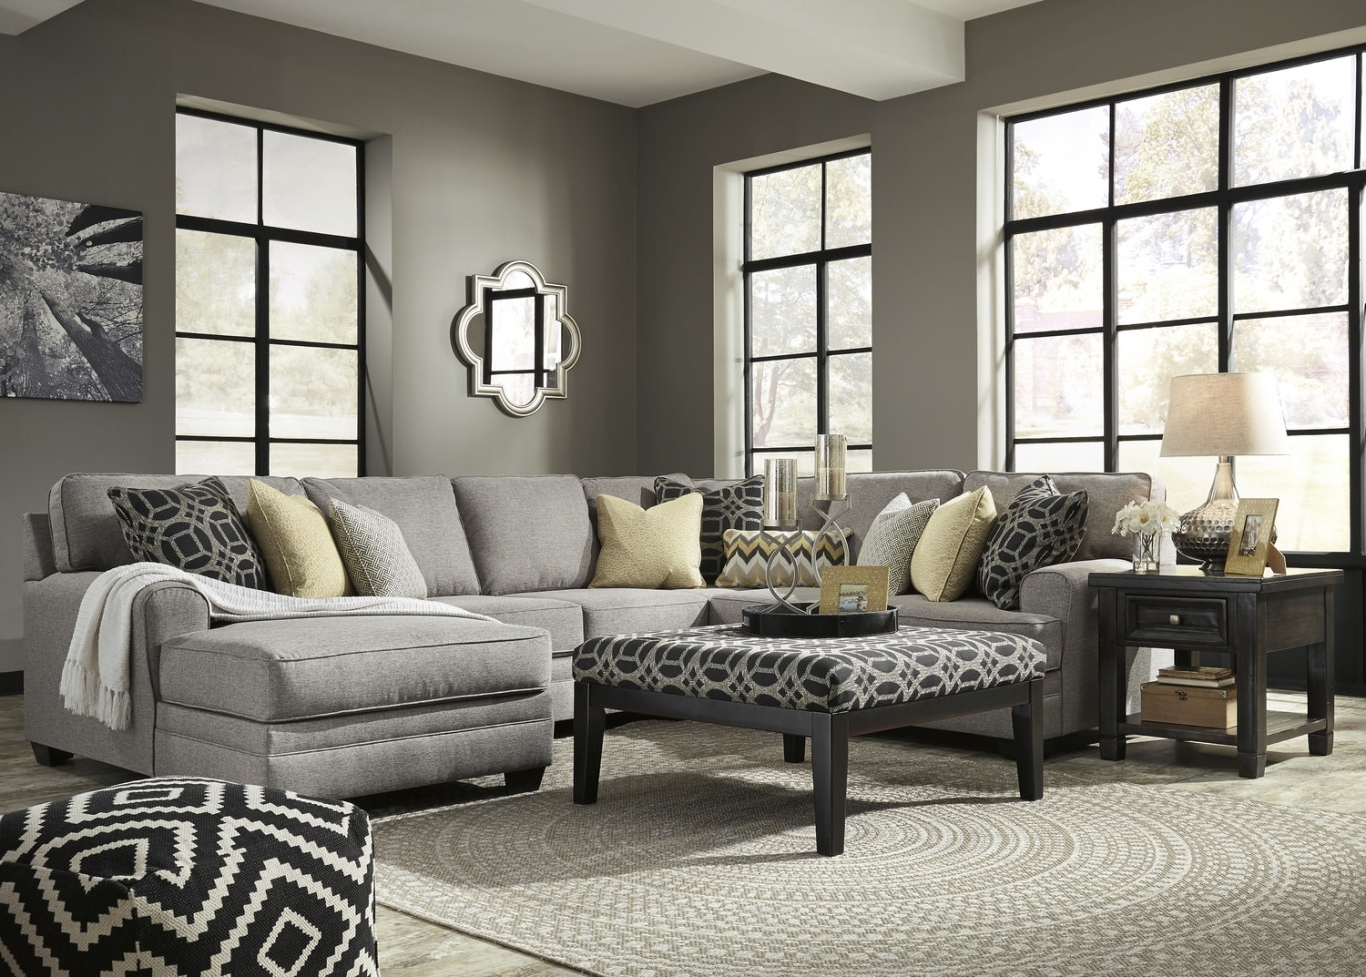 St Cloud Mn Sectional Sofas In Popular Hom Furniture St Cloud Mn (View 13 of 20)